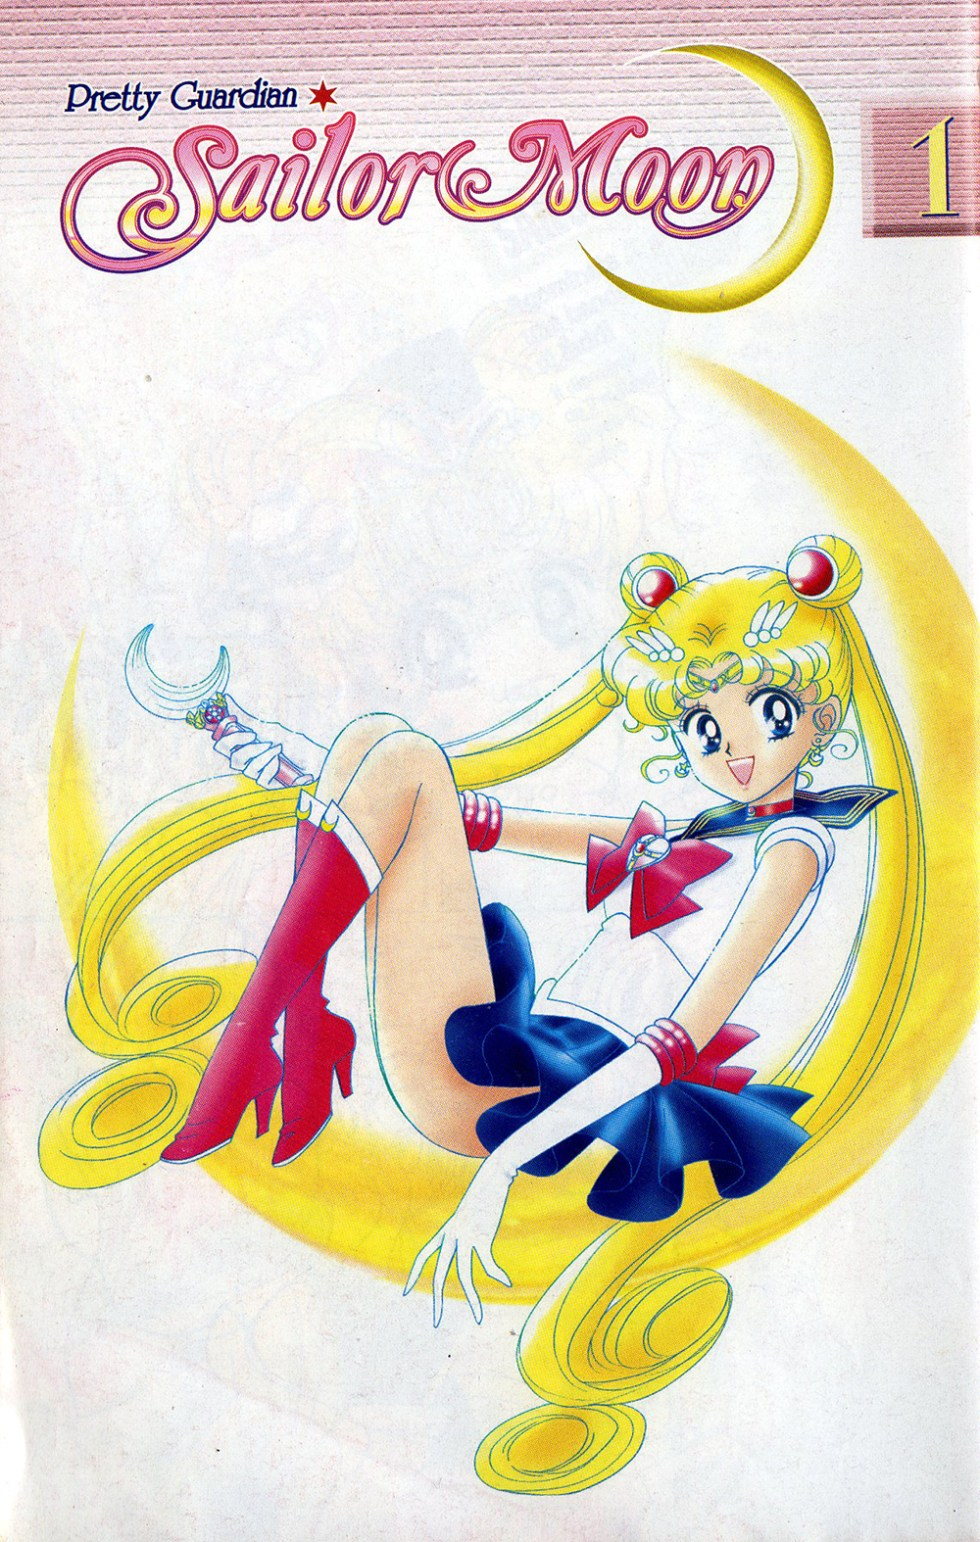 Pretty Guardian - Sailor Moon 1